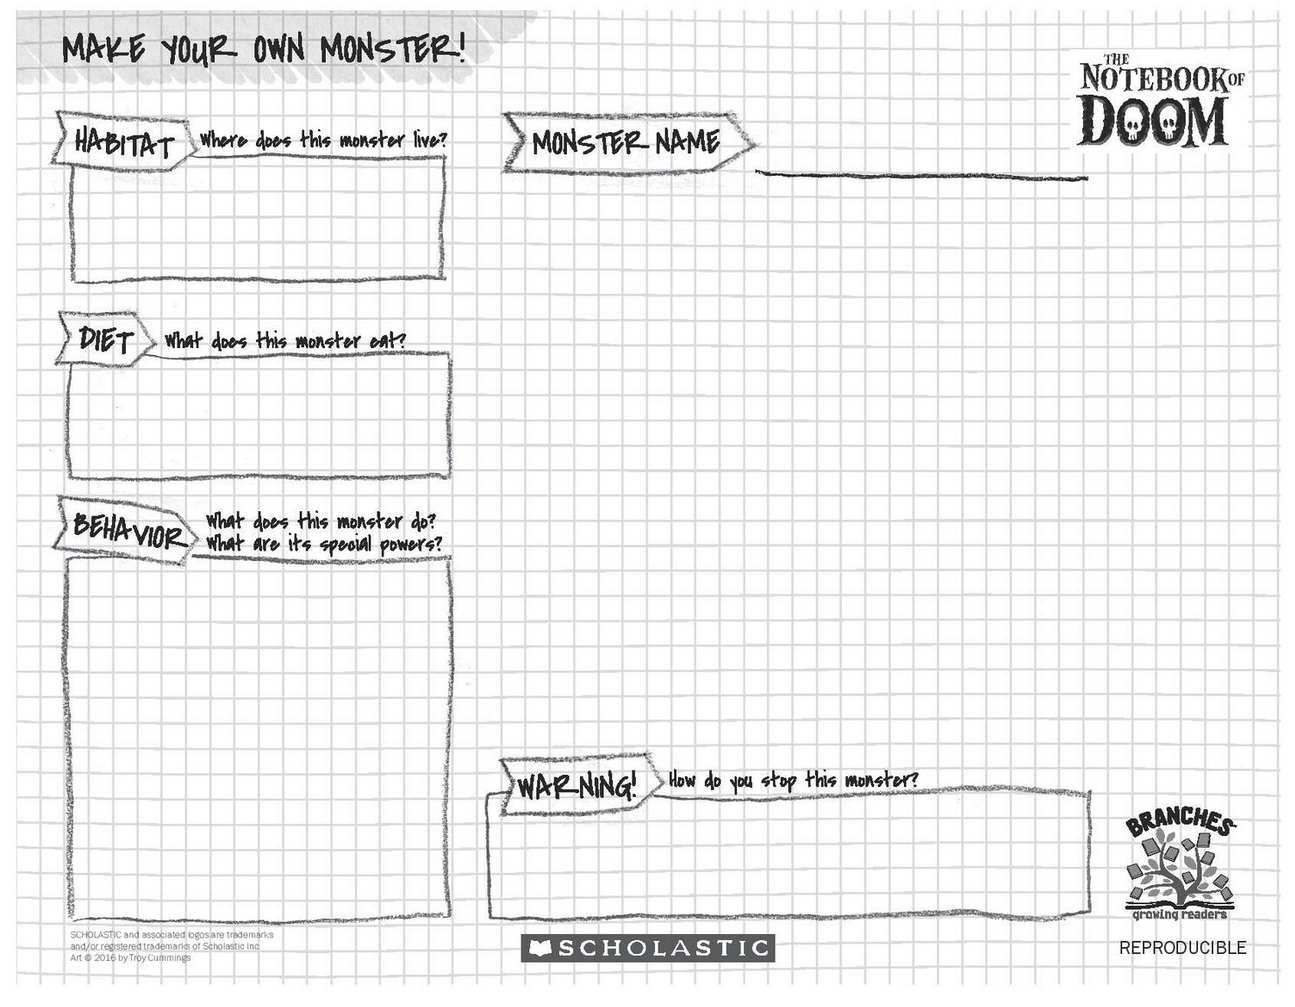 Make Your Own Monster With This The Notebook Of Doom Activity Sheet The Possibilities Are